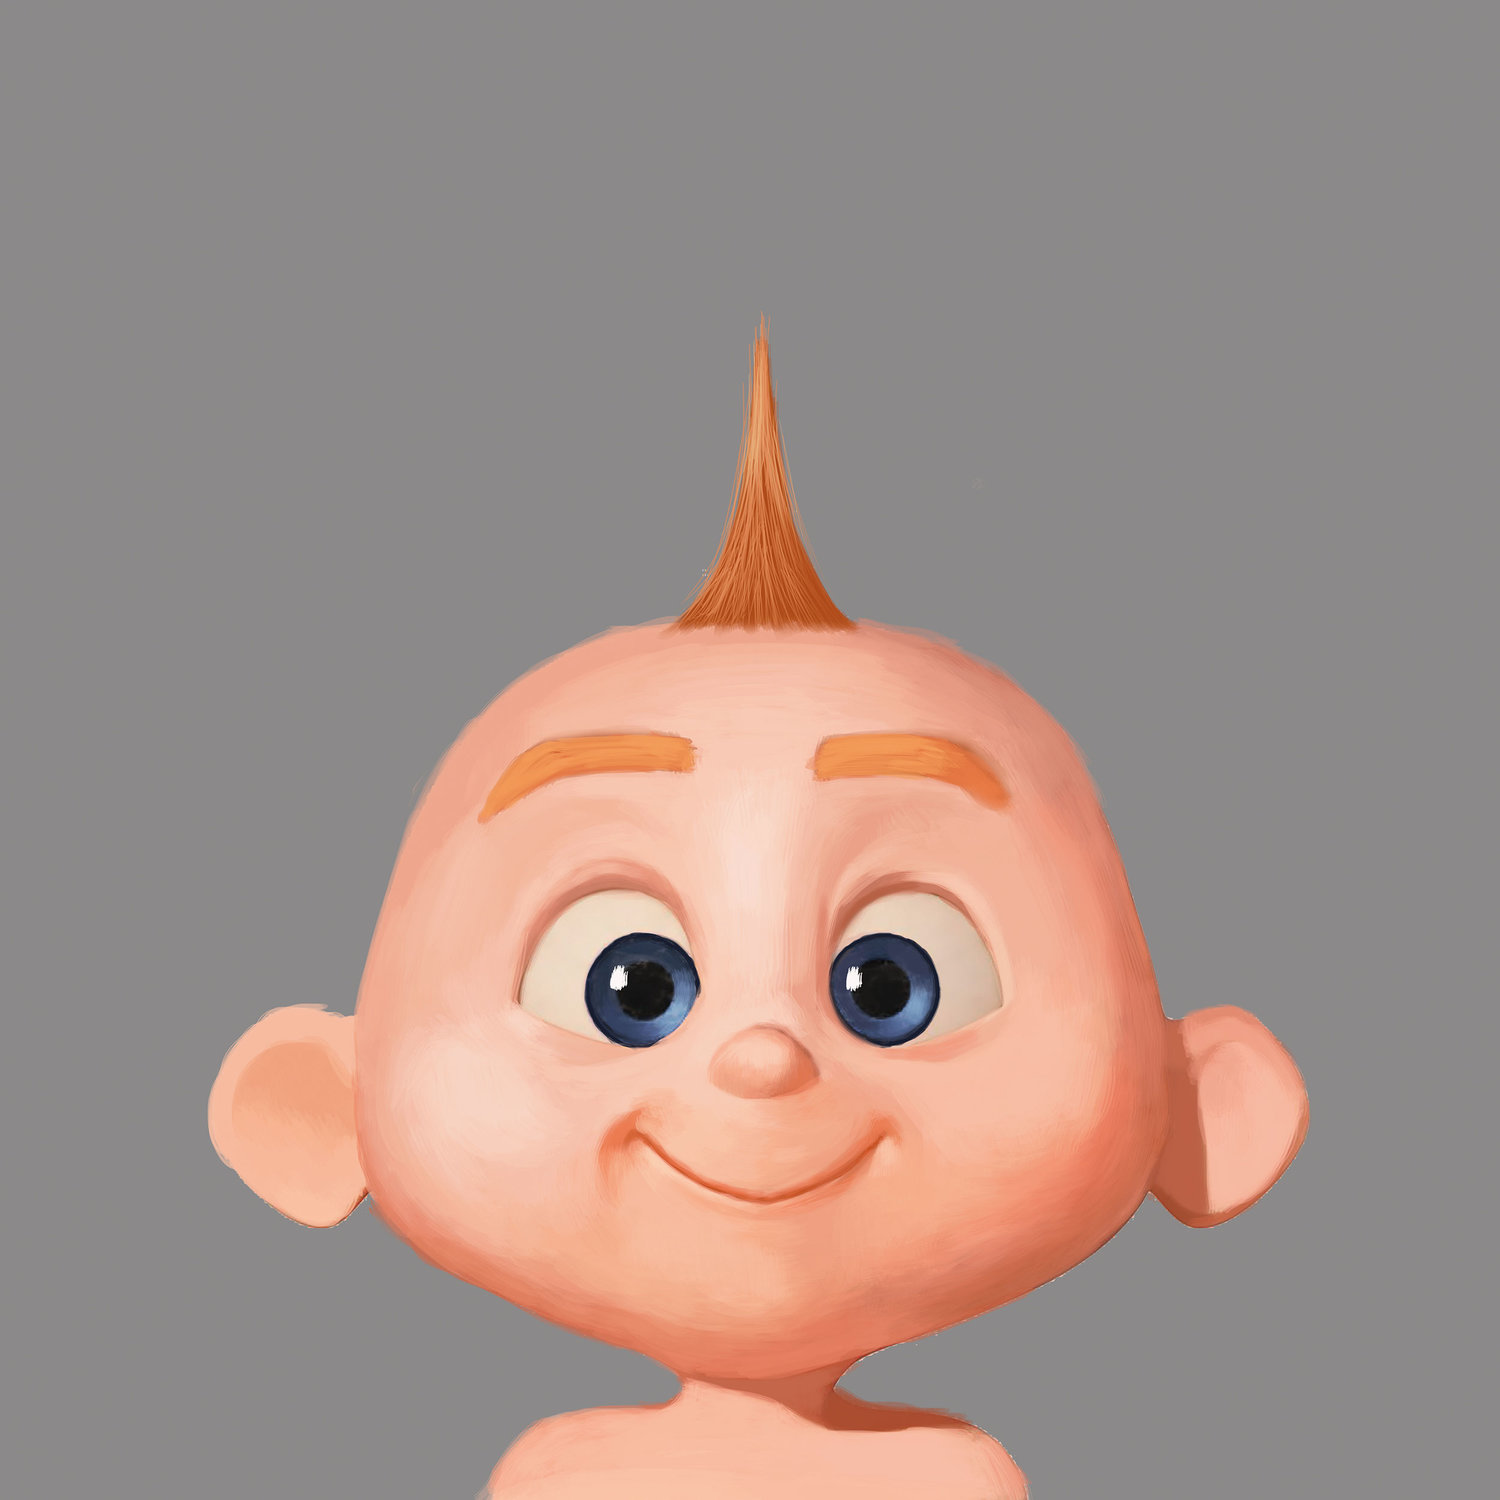 Jack Jack Parr The Incredibles Wiki Fandom Powered By